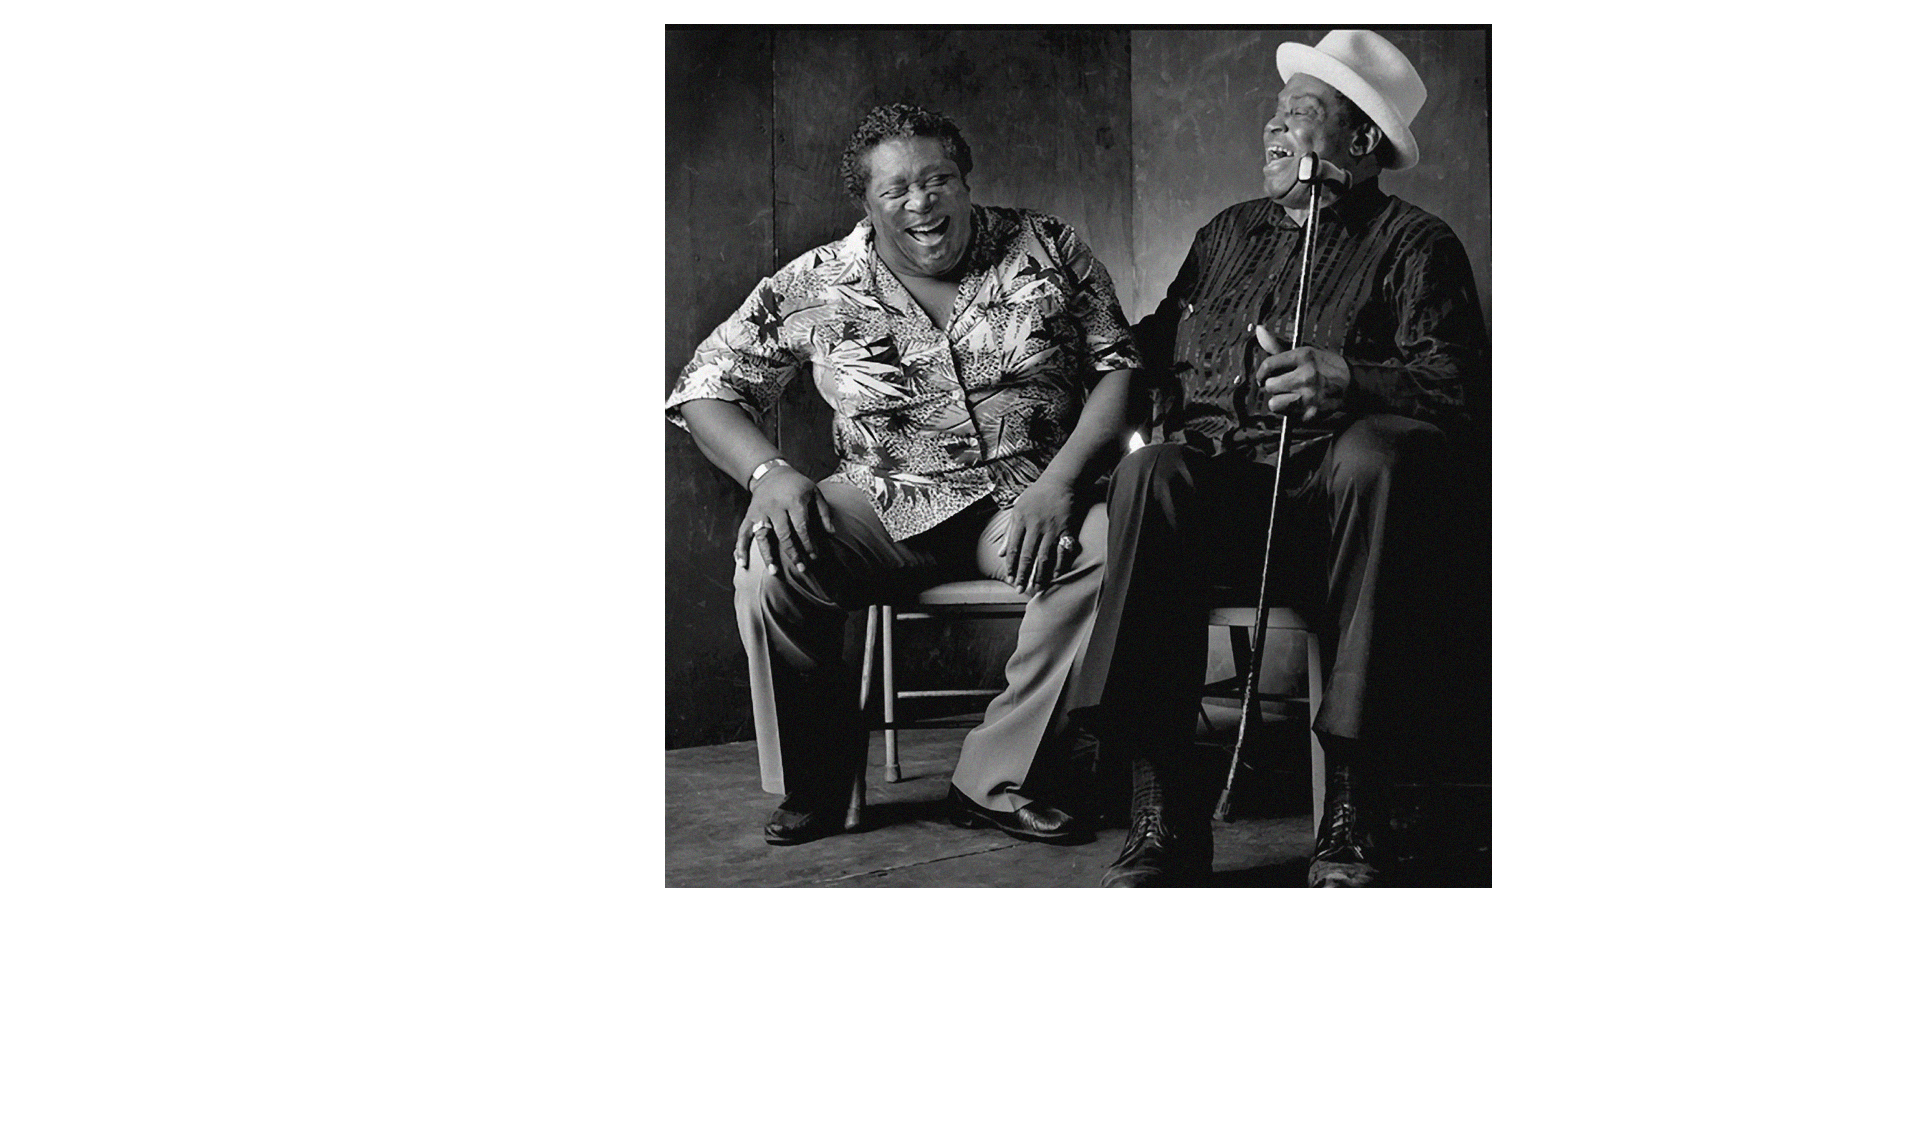 Blues greats B.B. King / Willie Dixon